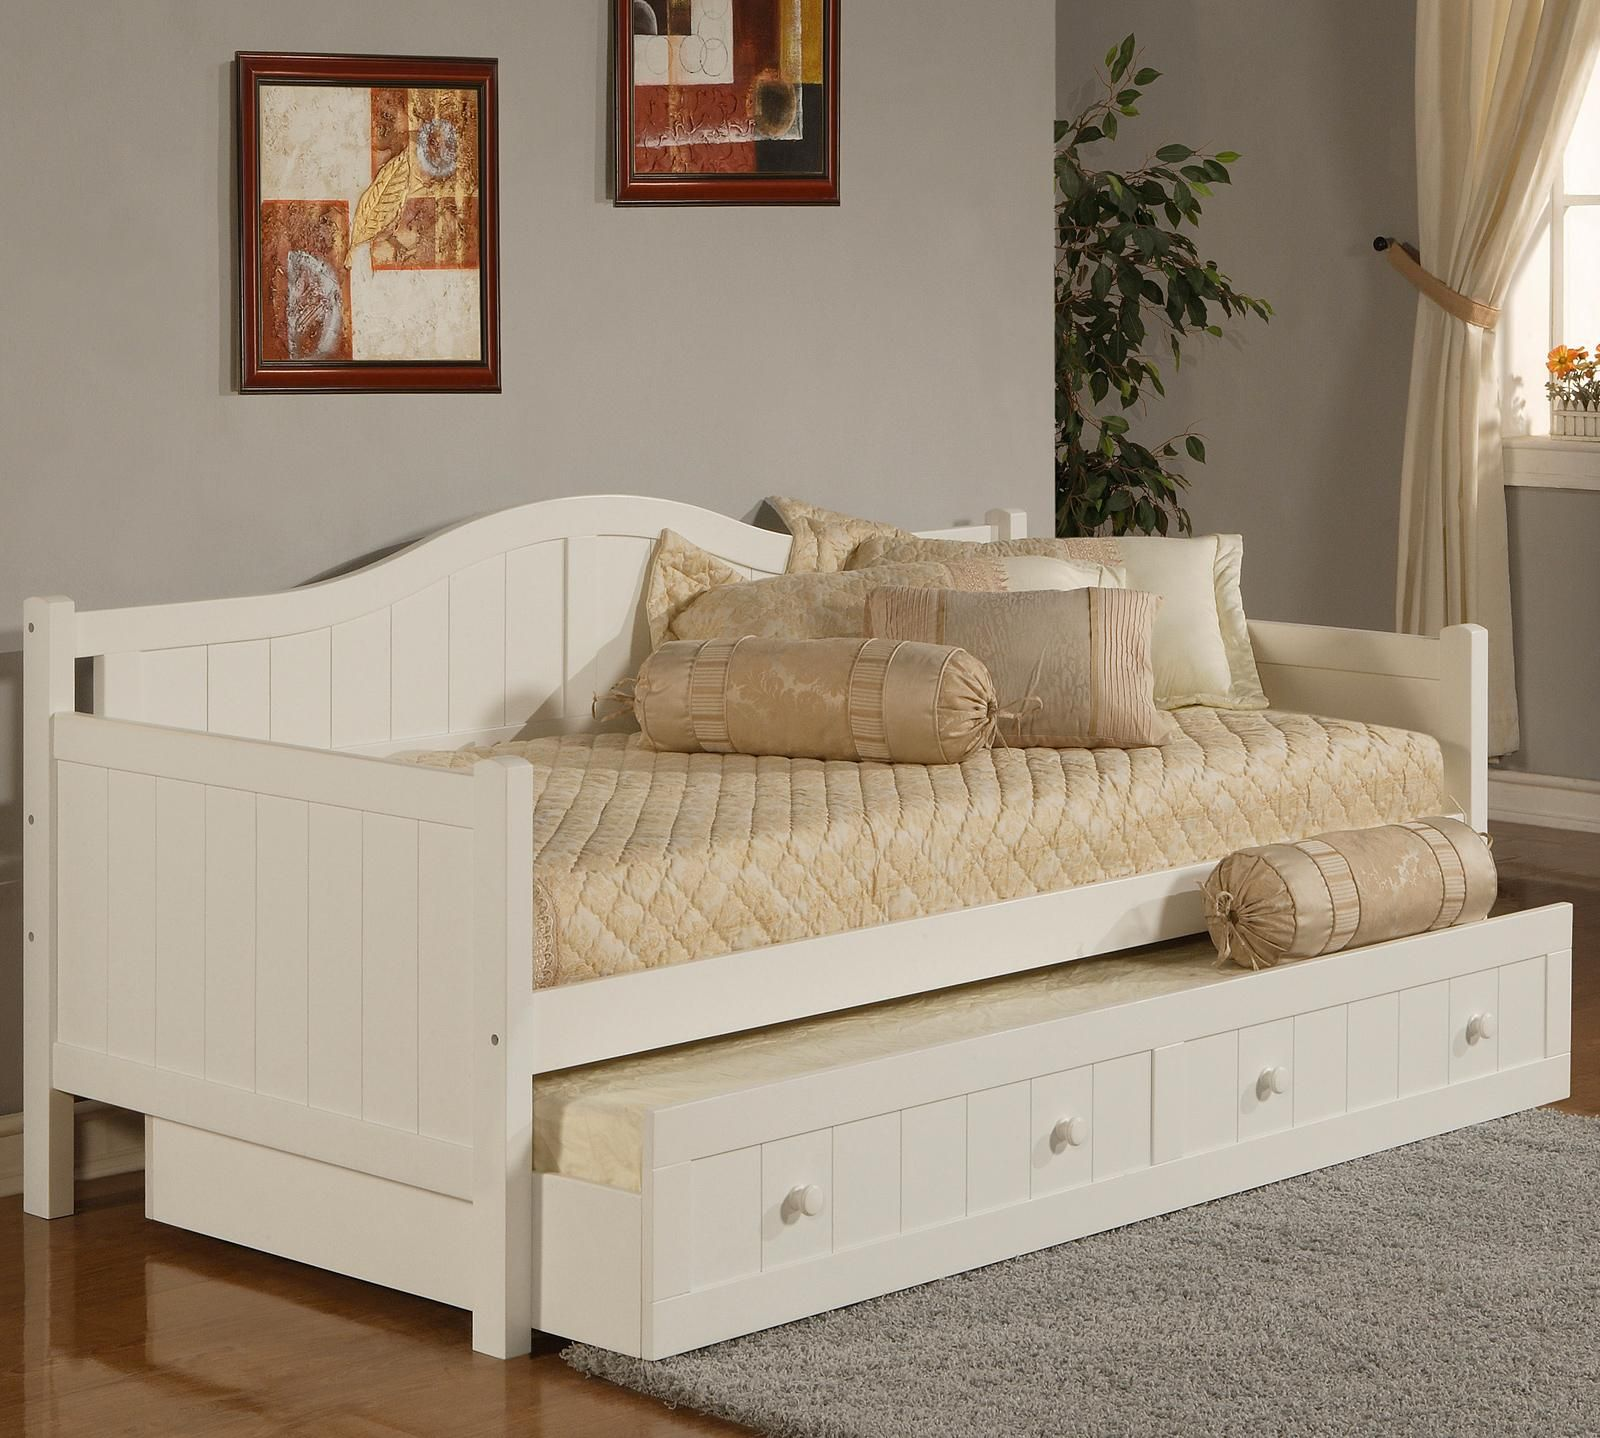 Gorgeous Full Size Daybed With Trundle And Storage Drawer White Daybed With Trundle Daybed With Trundle Wood Daybed White wood daybed with trundle